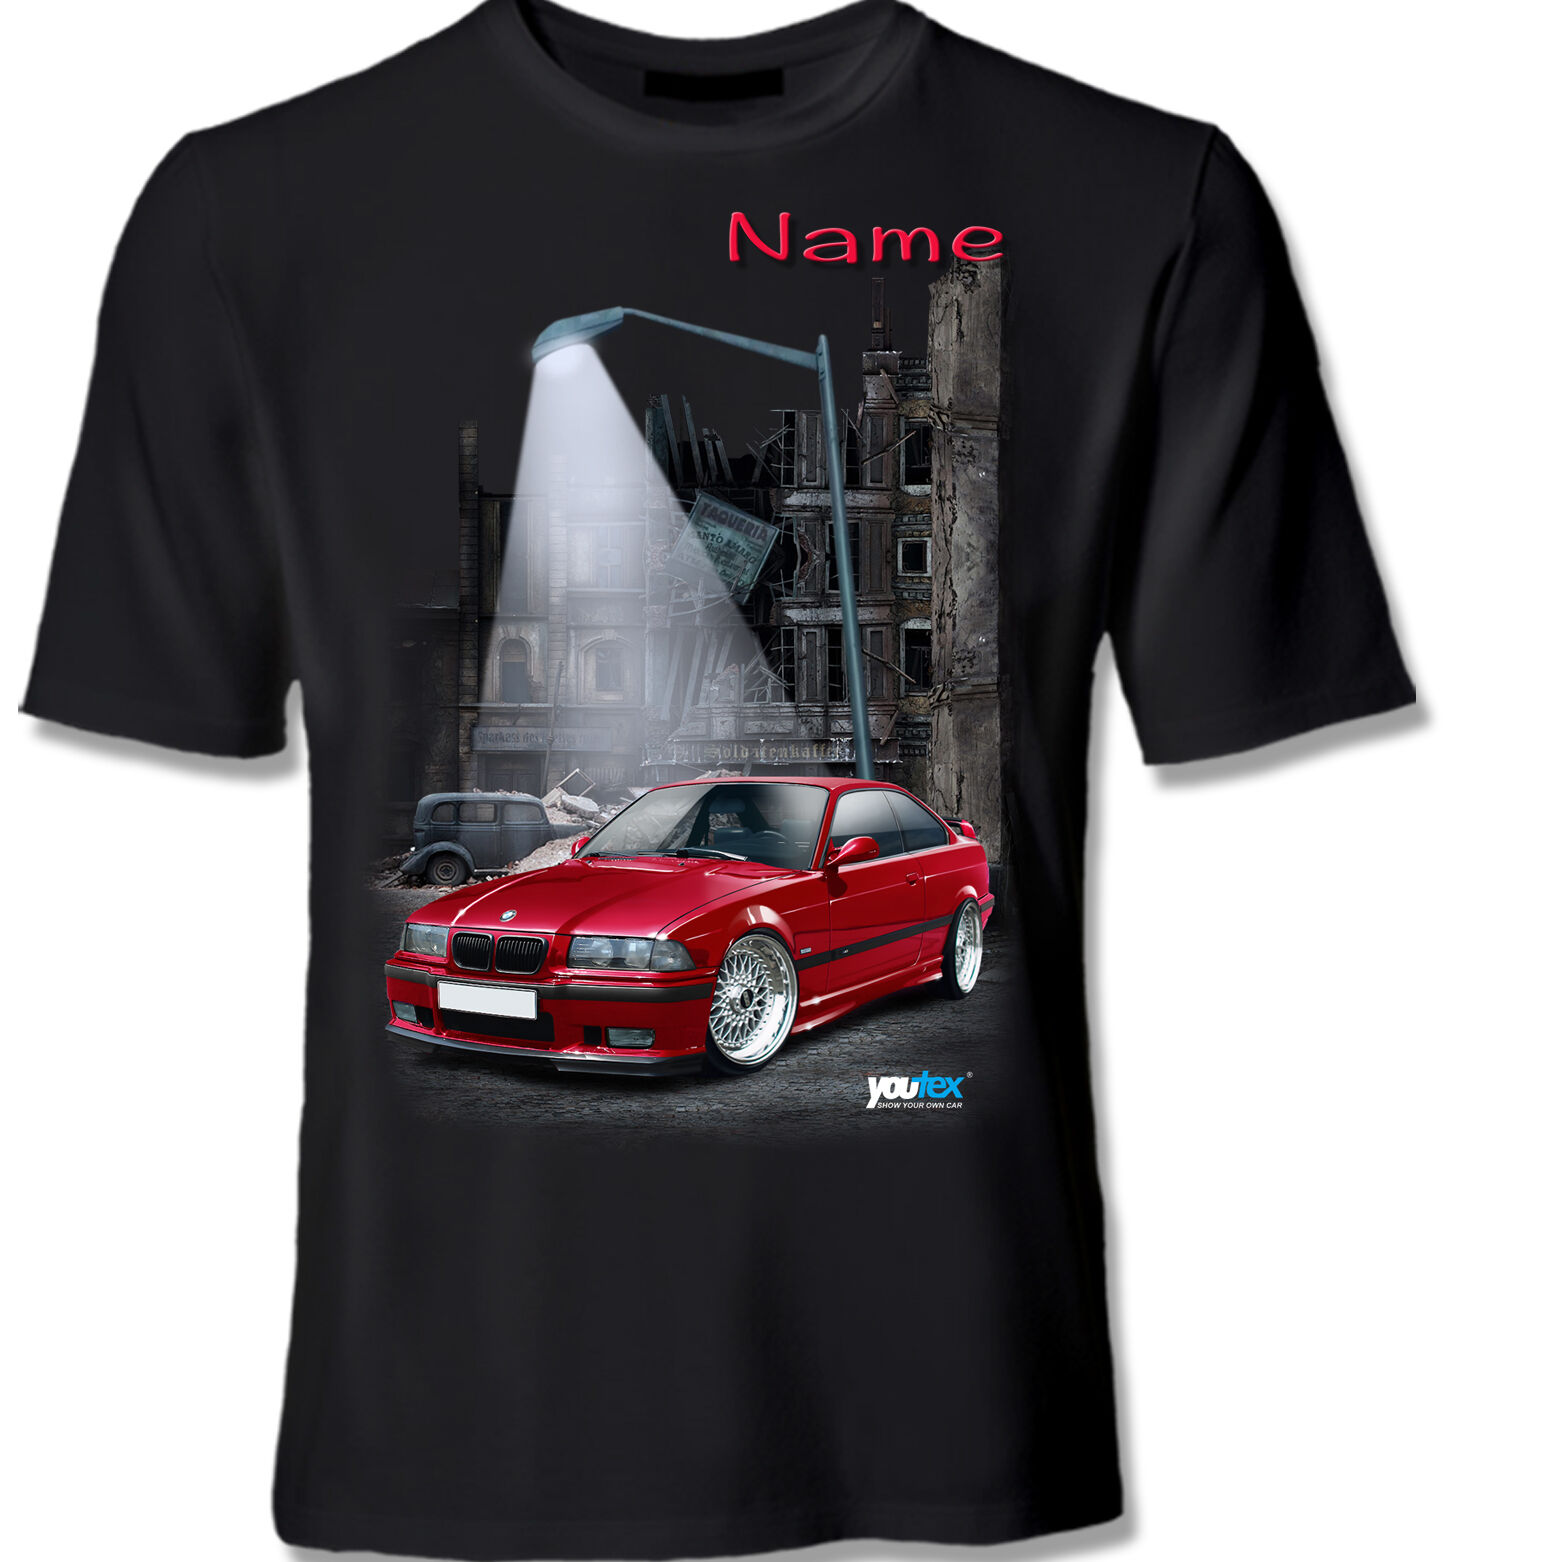 BMW e36 m3 original youtex T SHIRT o o o cuscini 00bc2e